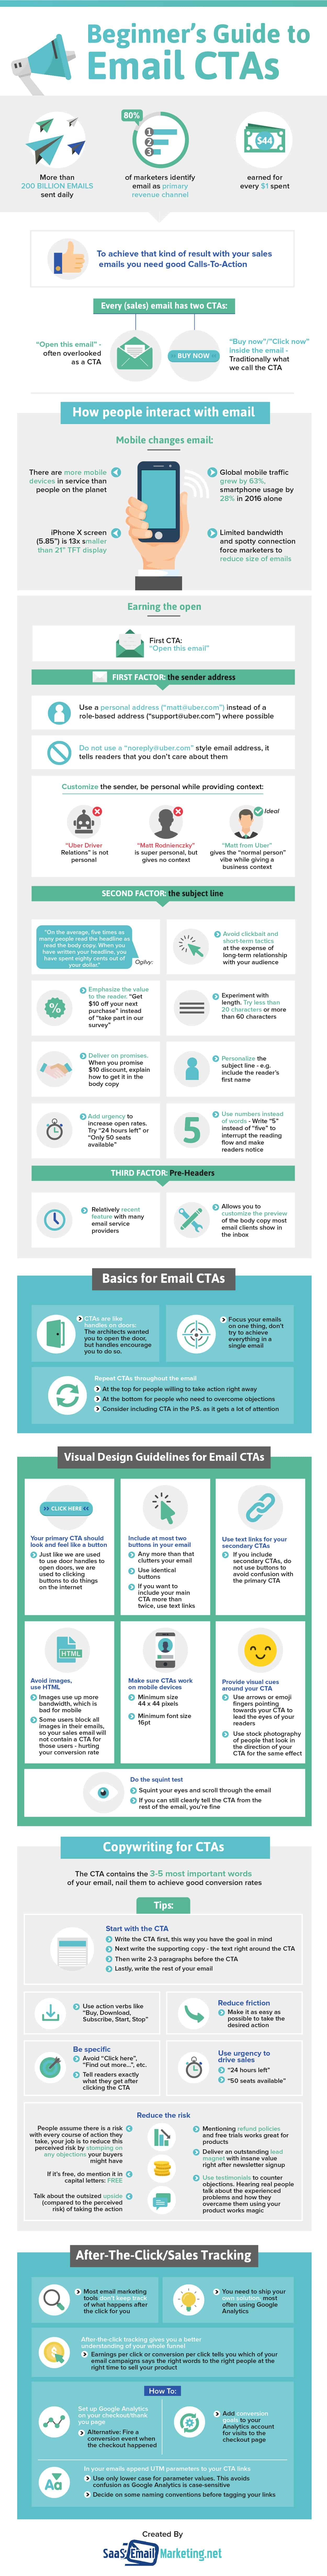 99 Beginners Guide to Email CTA Infographic